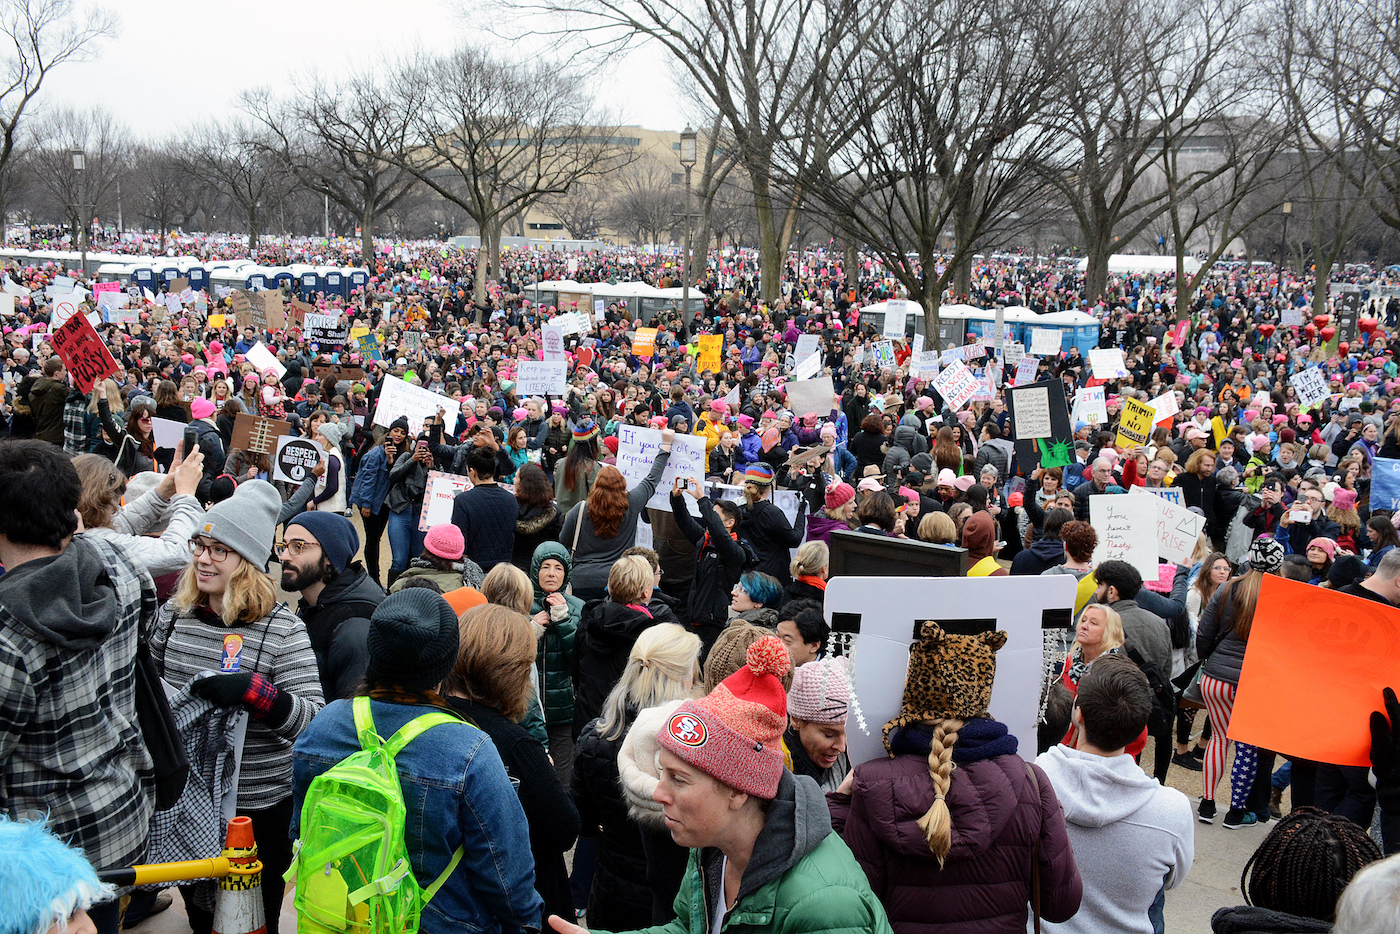 Women all over the world rang out a message demanding equality on Jan. 21. Over a million women showed up in Washington, D.C. (Roy Lewis/The Washington Informer)